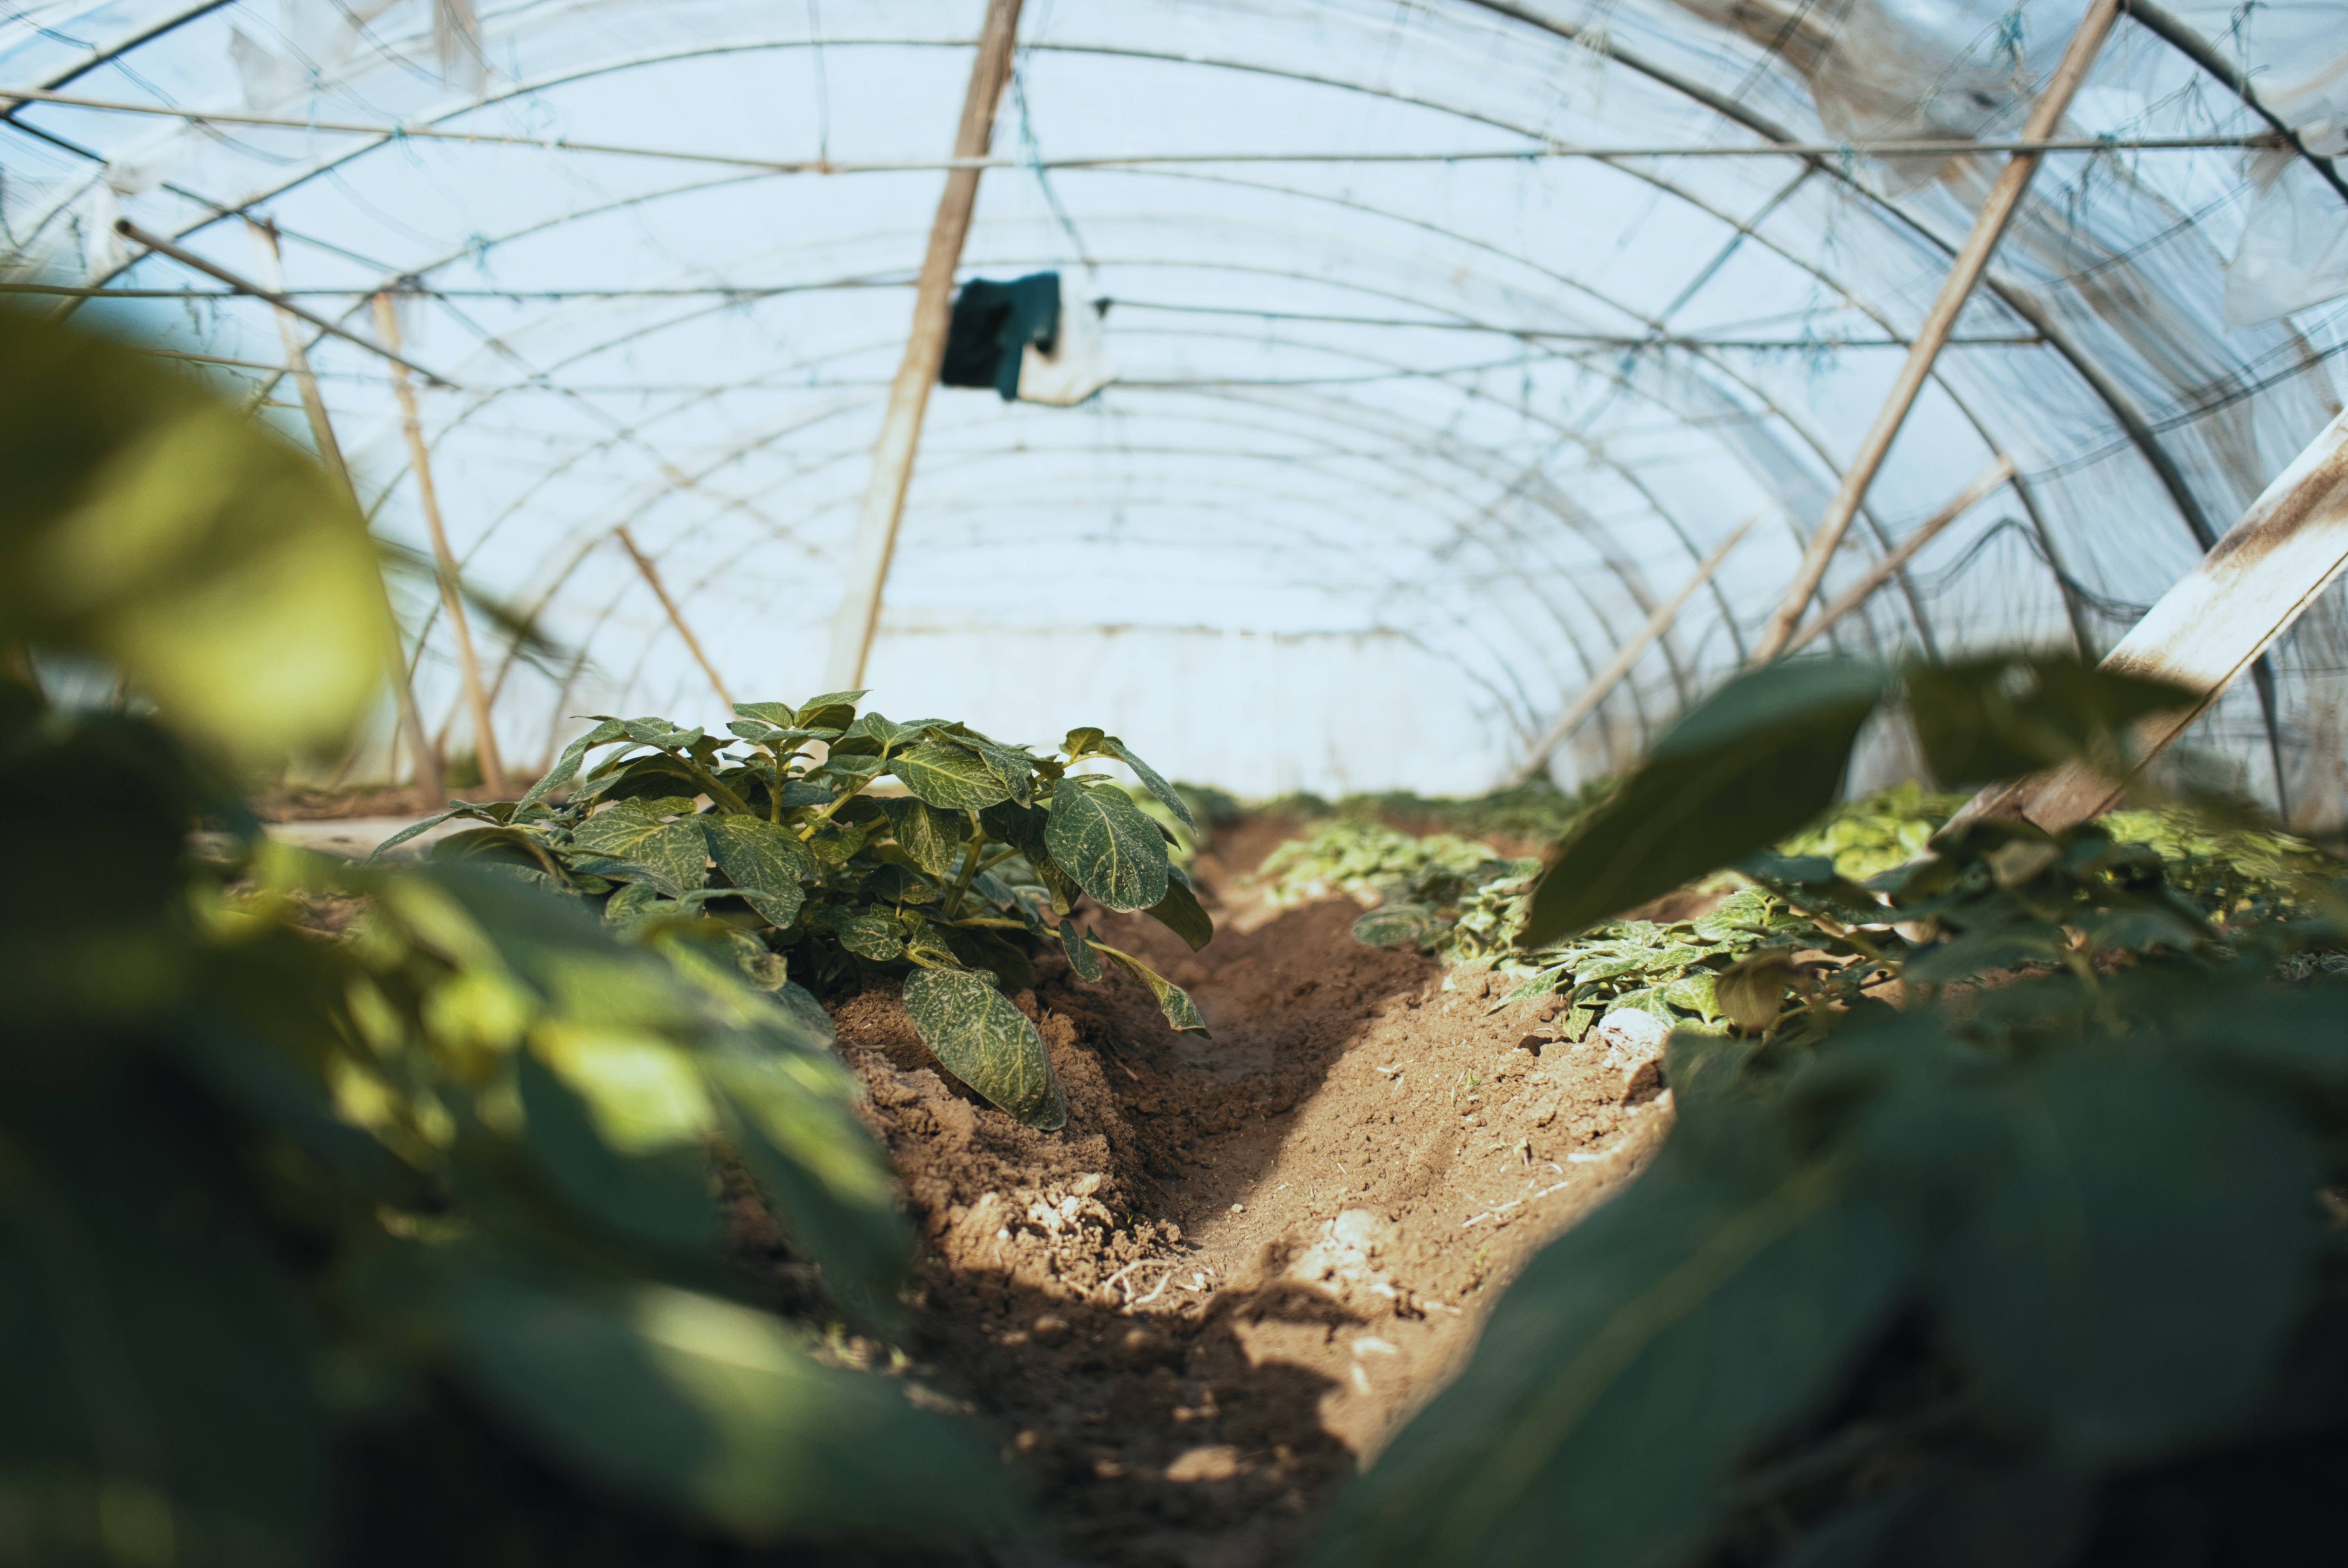 worm's-eye view photography of plant nursery